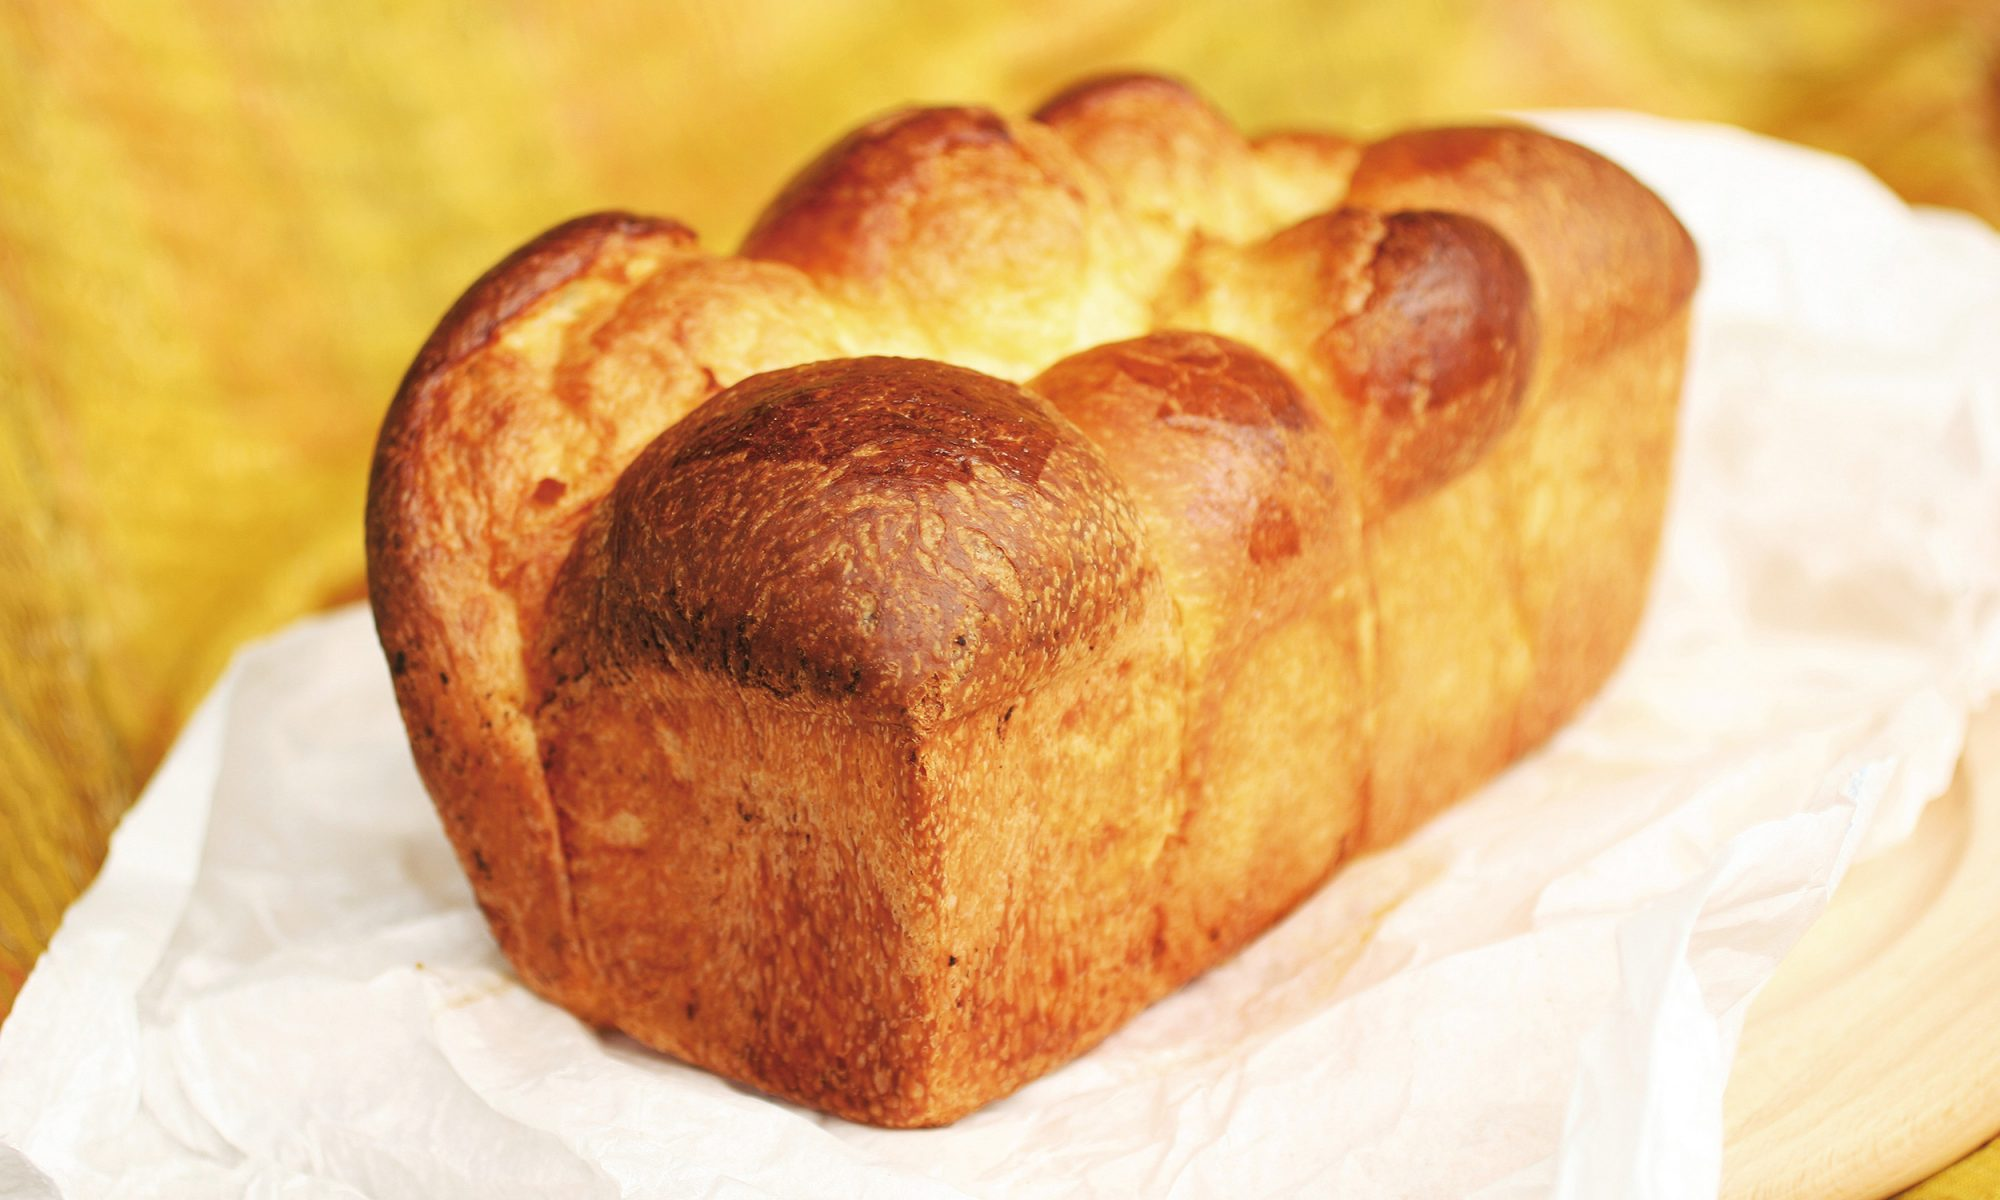 EC: Once You Know How to Make Brioche, All Things Are Possible